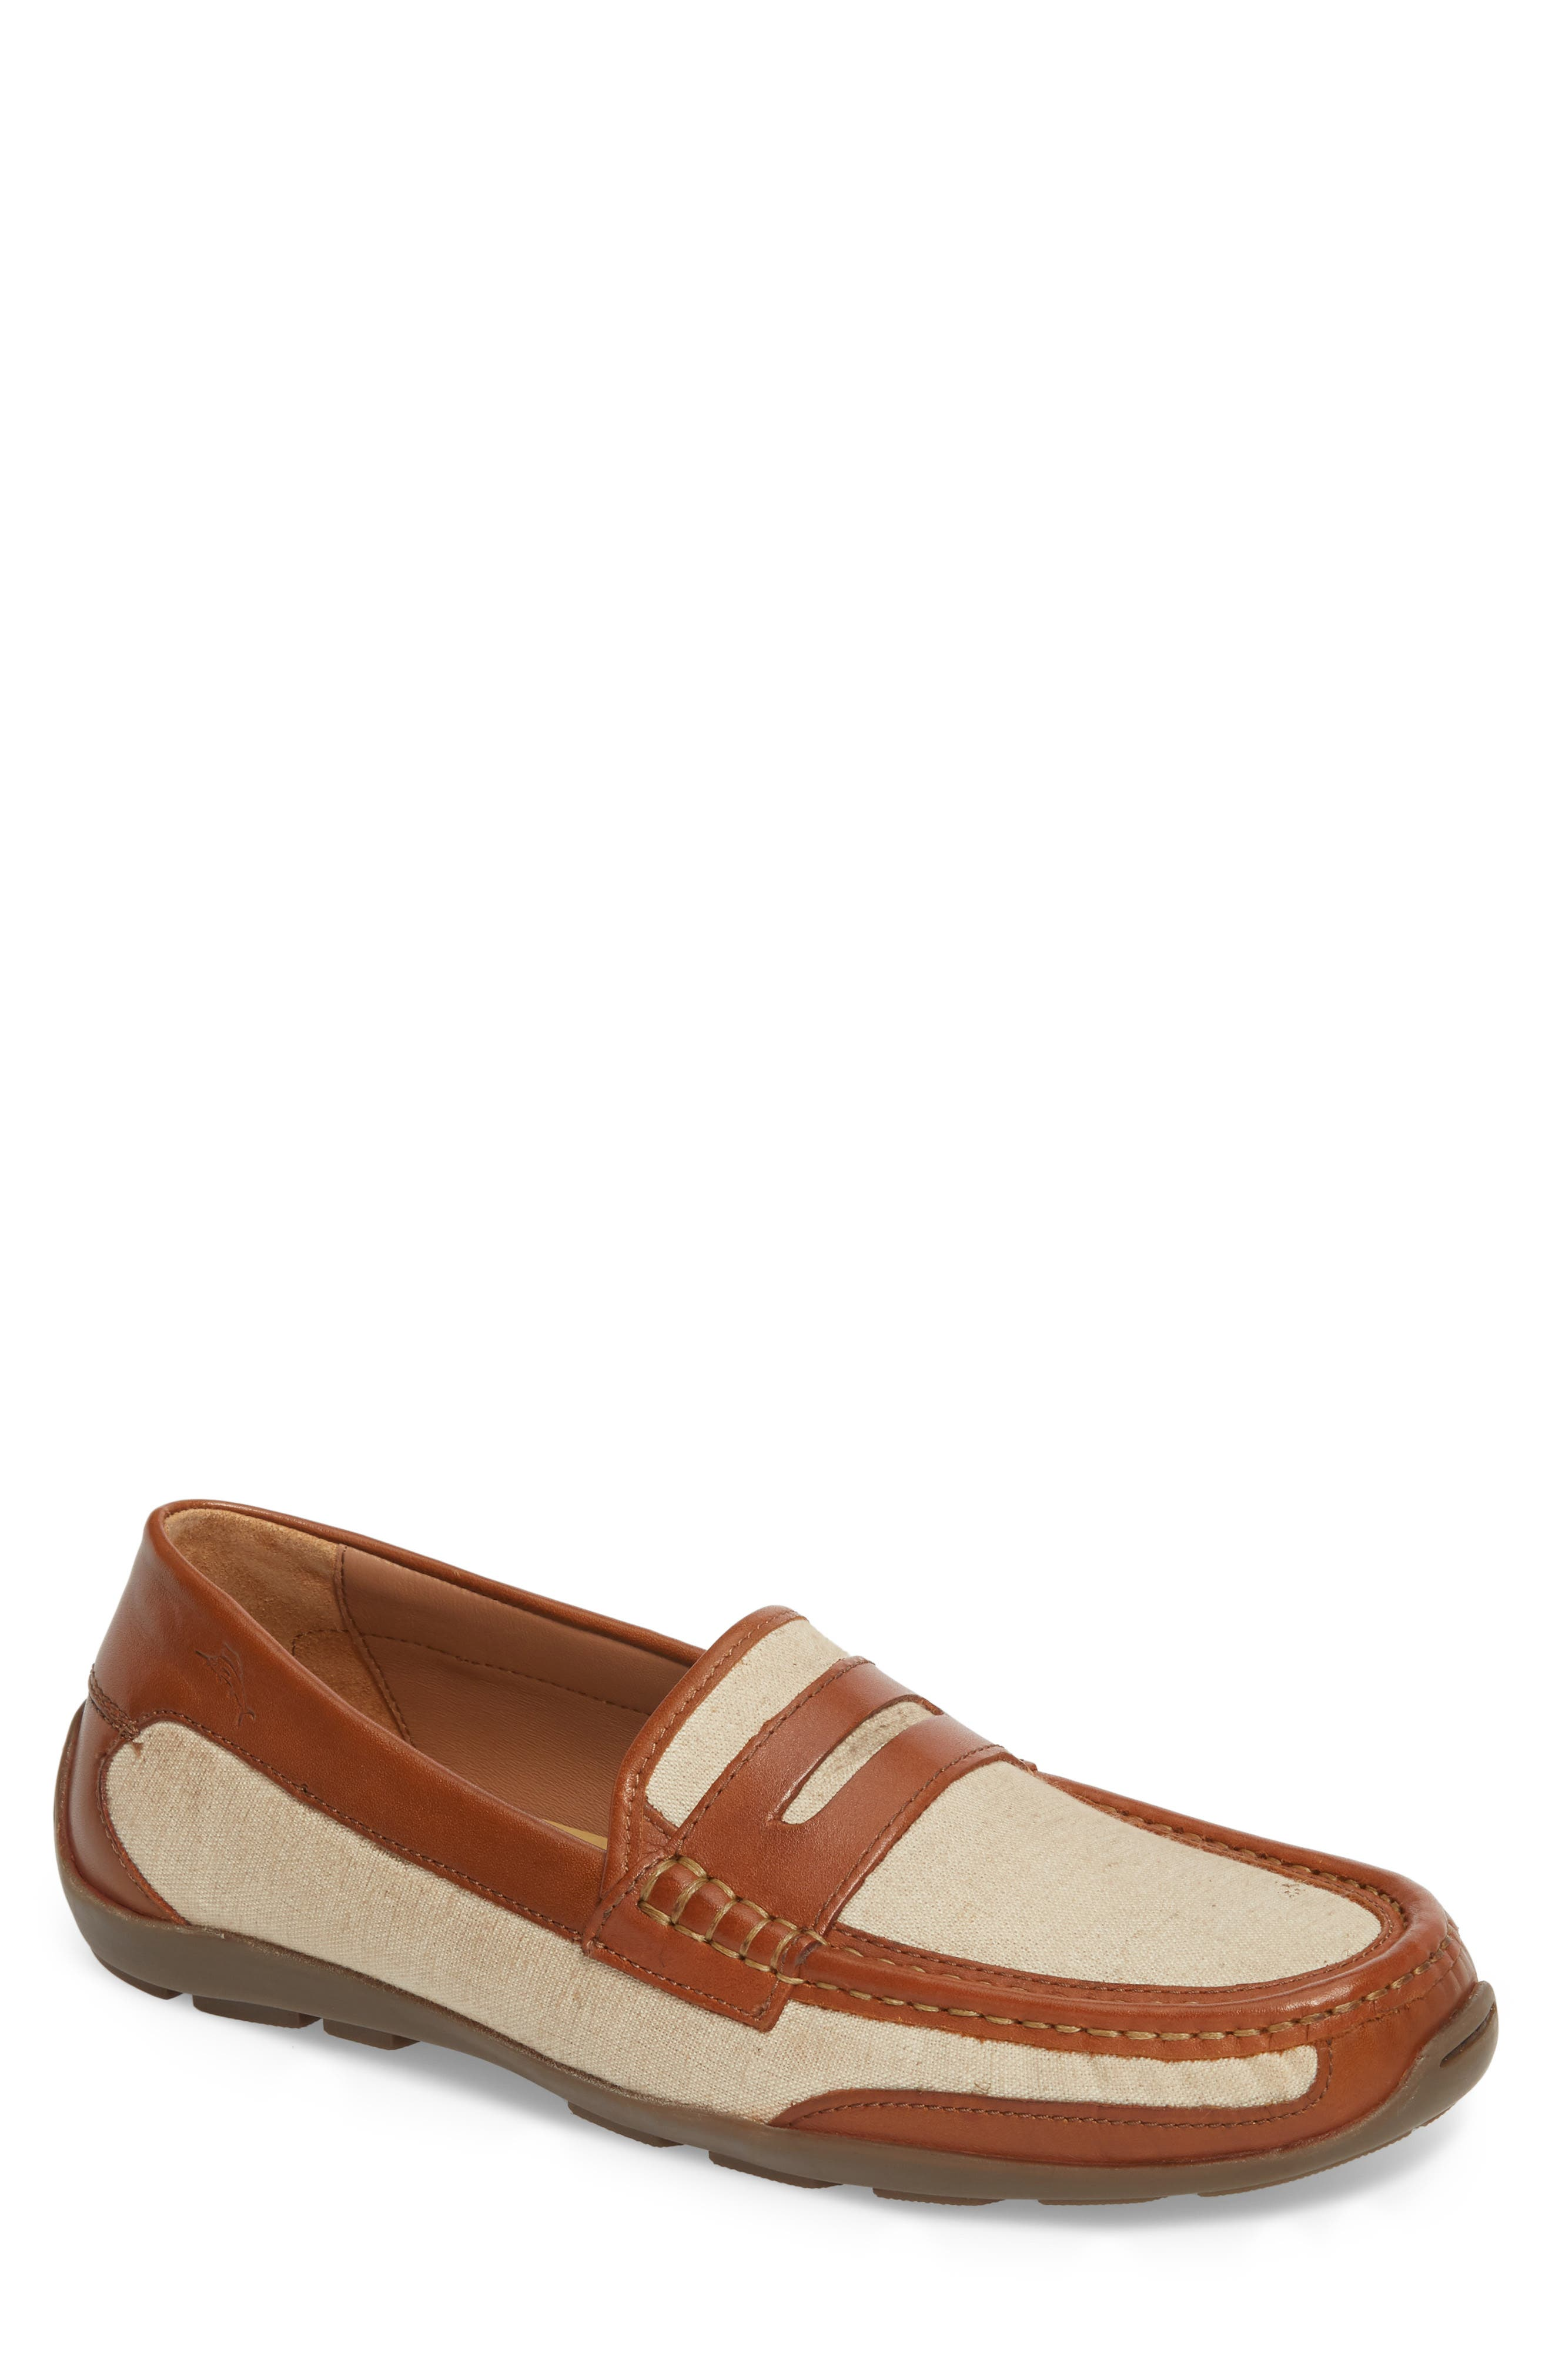 Taza Fronds Driving Shoe,                             Main thumbnail 1, color,                             Brown/ Natural Leather/ Linen